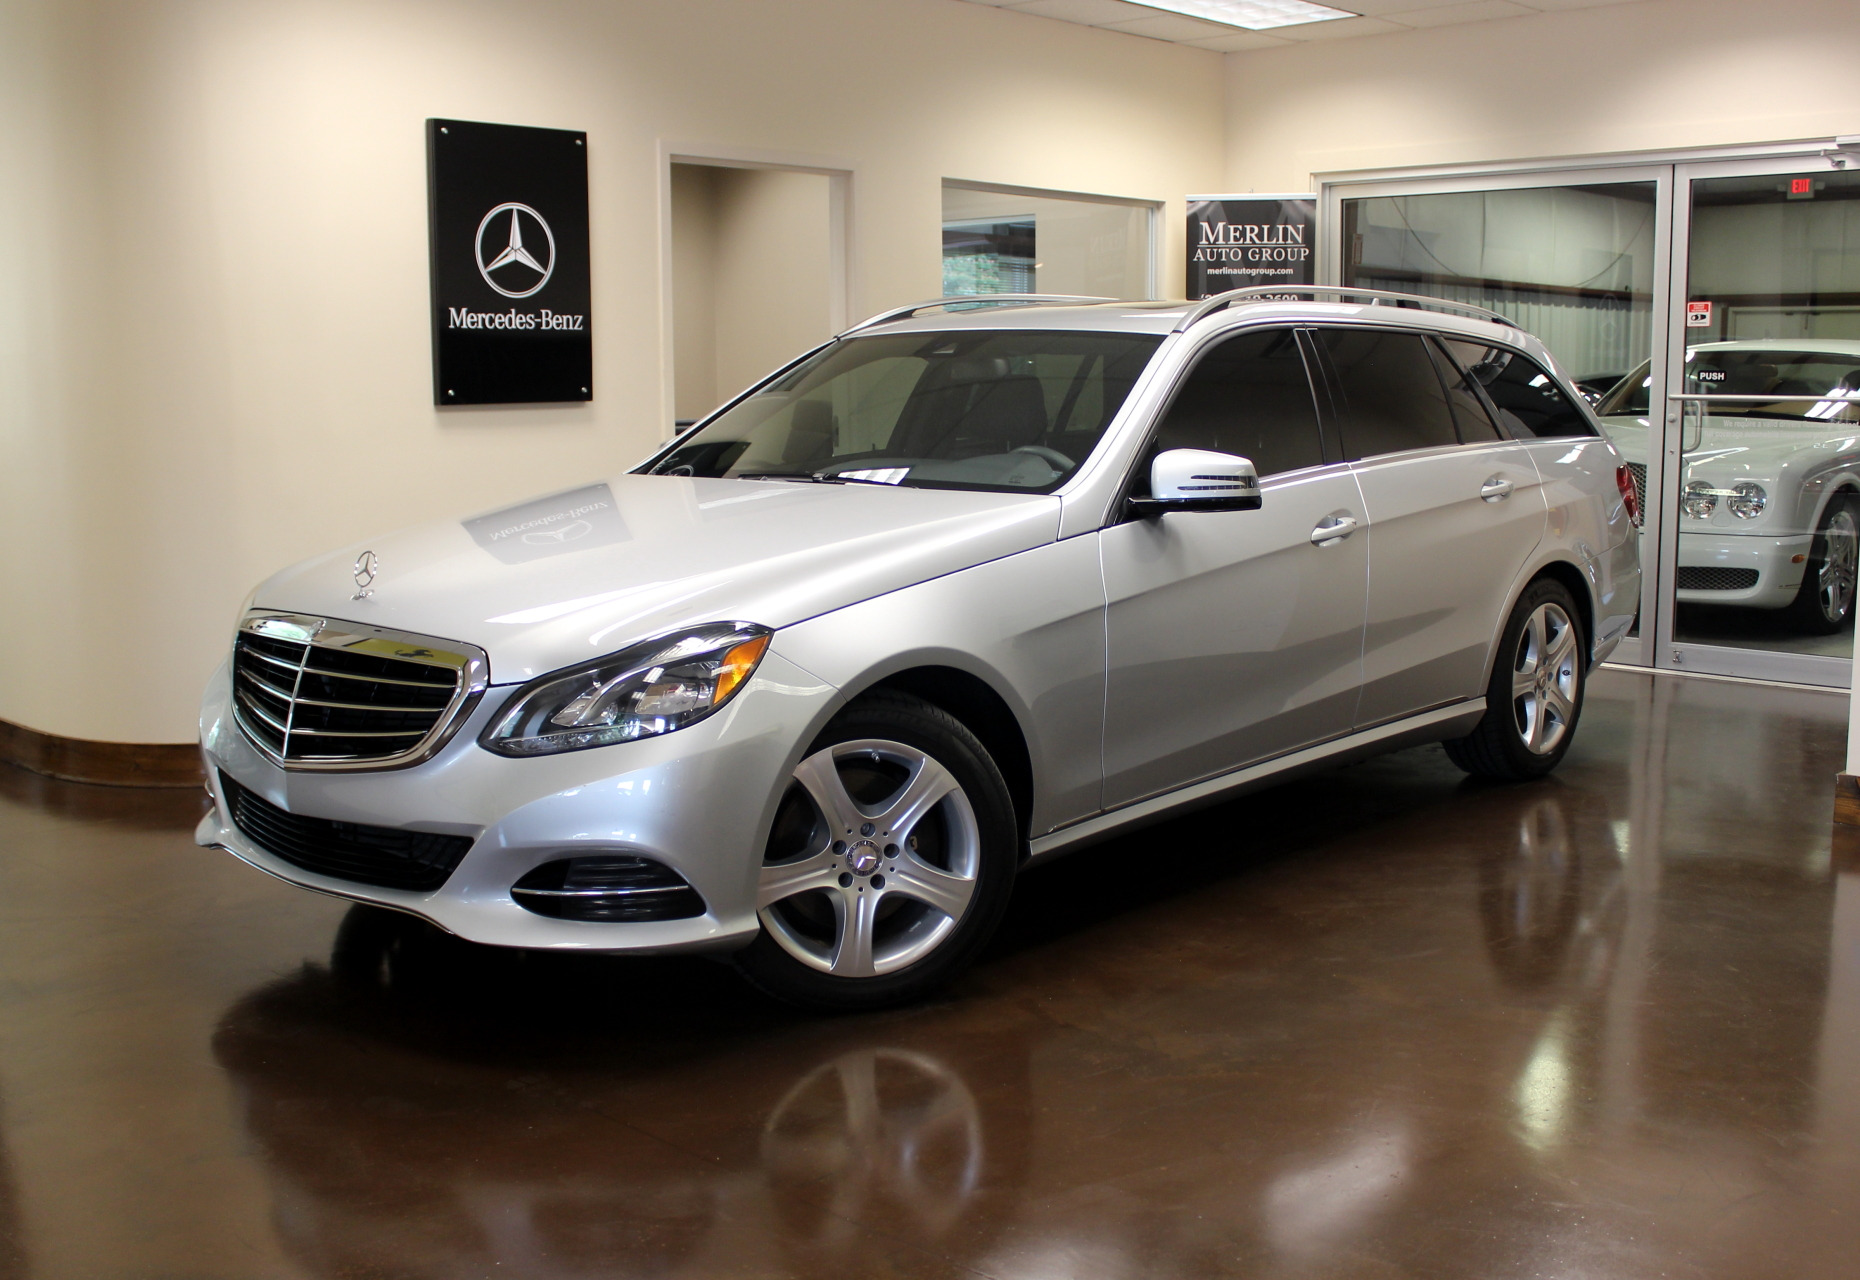 Used 2014 mercedes benz e class stock p3089a ultra for Mercedes benz e350 luxury sedan 2014